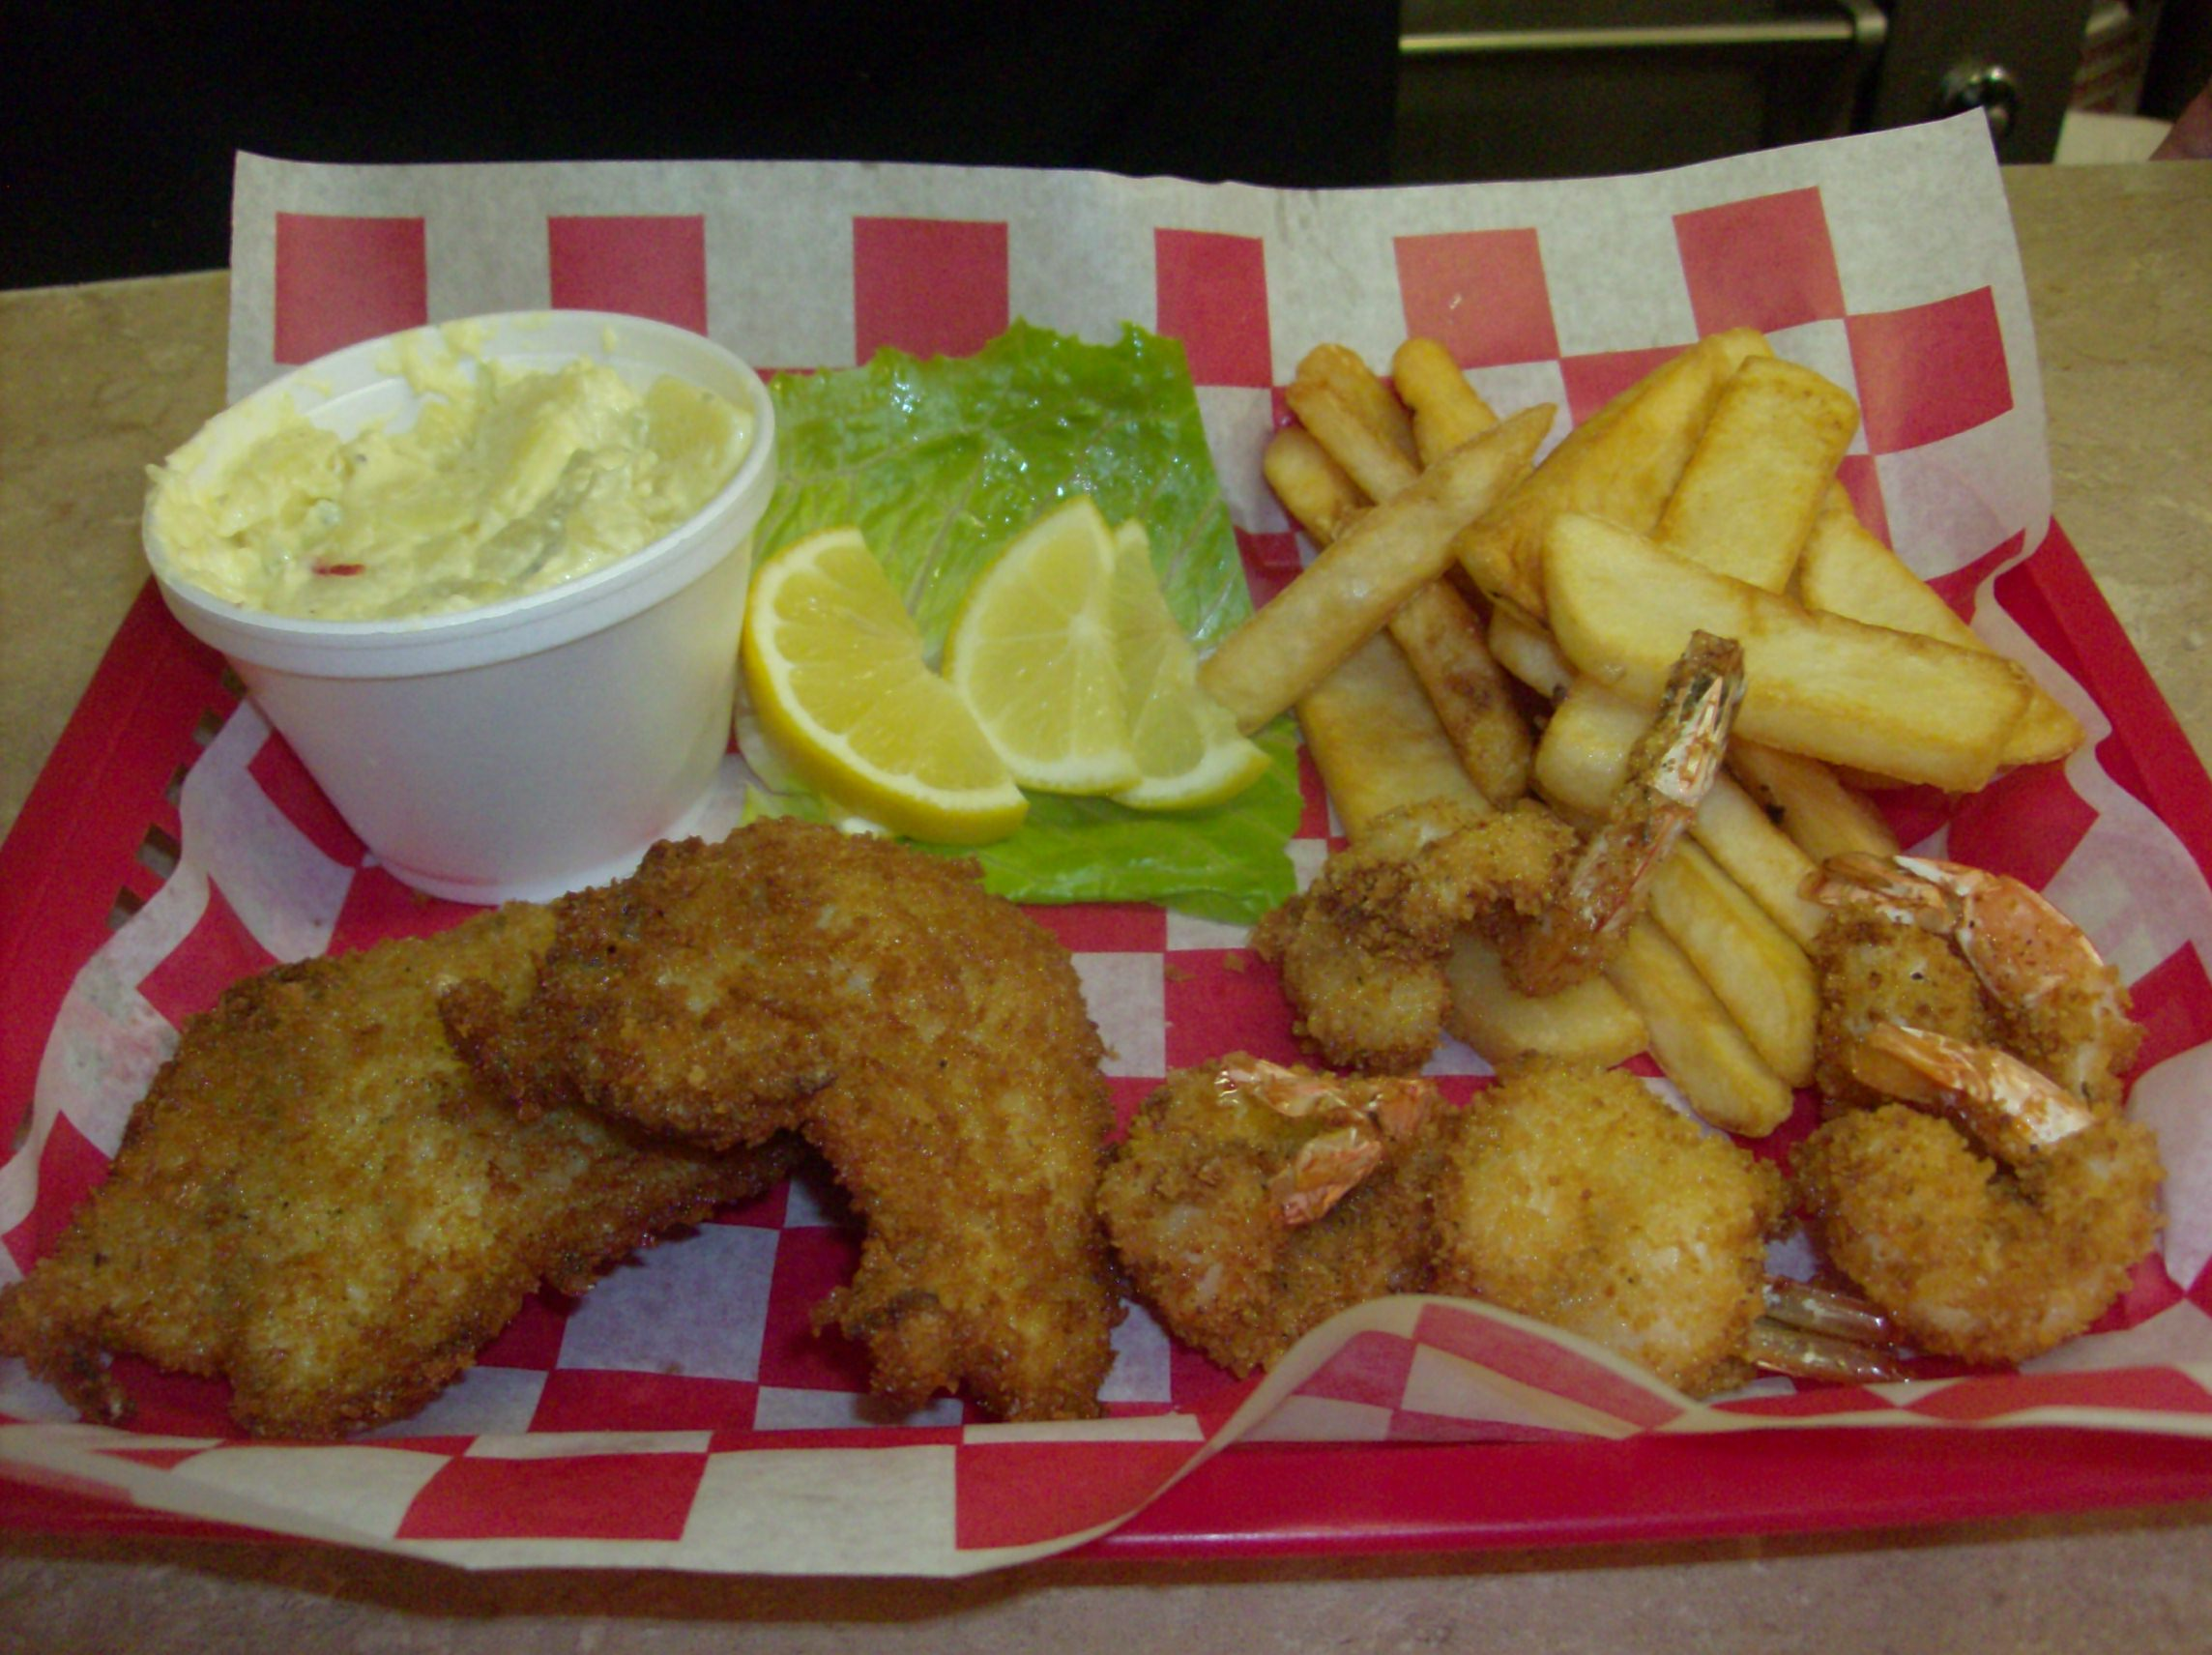 Seafood Combination Plate with Fries and Potato Salad